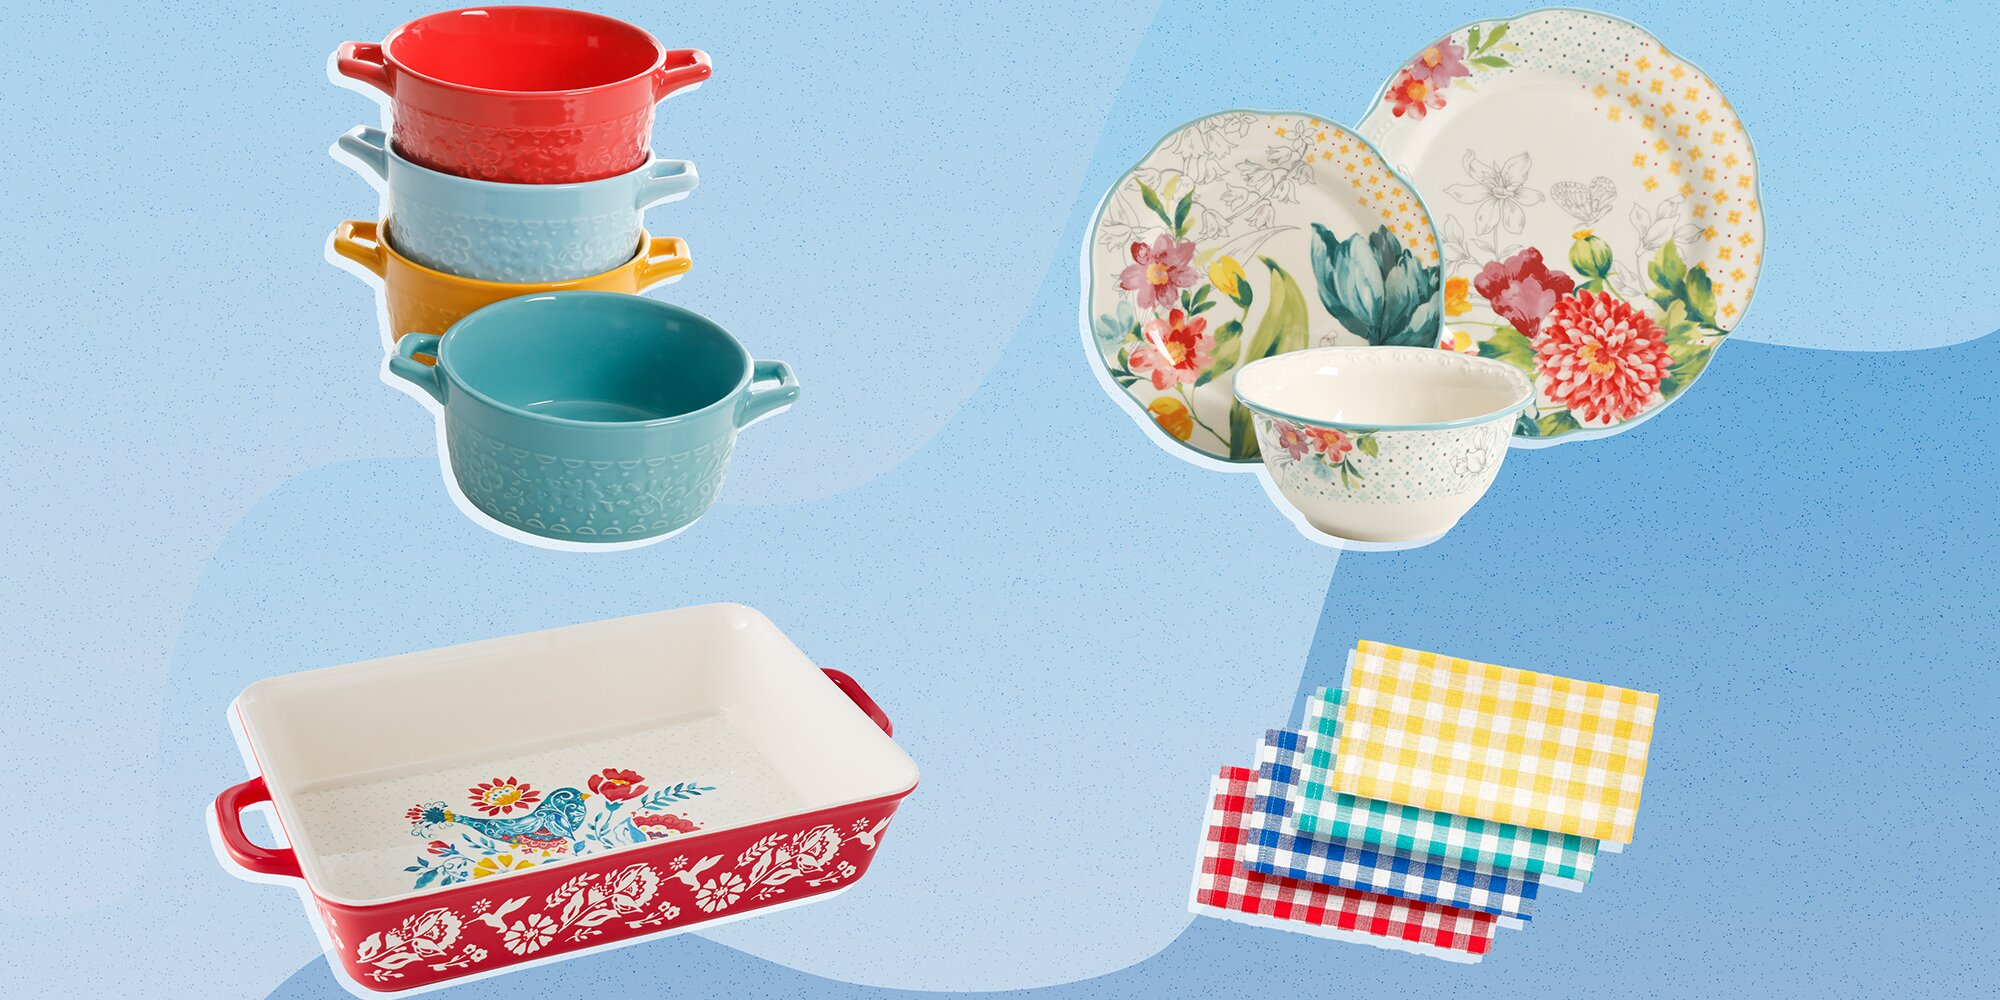 Give Your Kitchen Table a Spring Makeover with Personalized Help from Ree Drummond